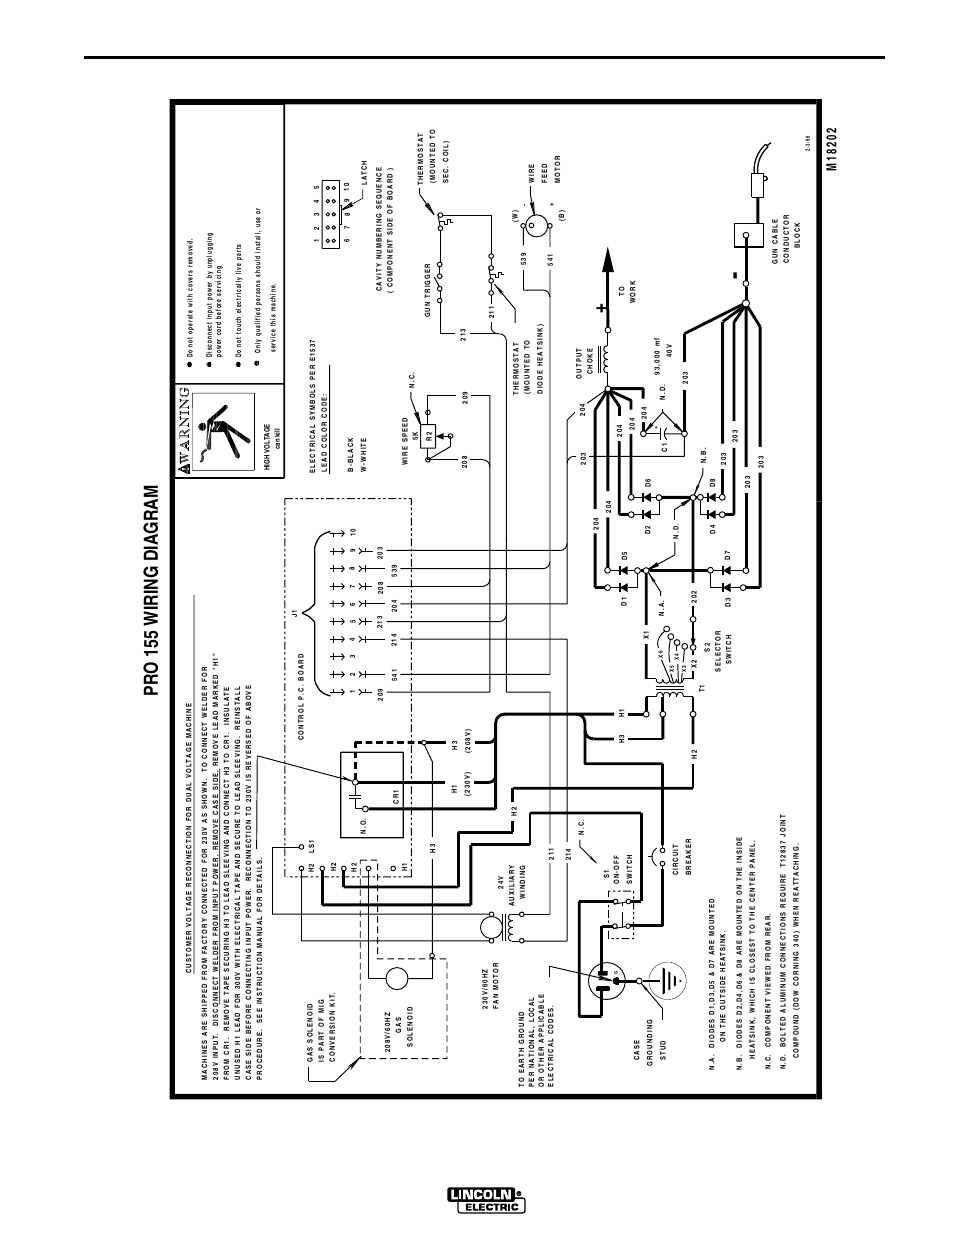 Lincoln Ac 225 S Wiring Diagram  Adding Dinse Style Quick Disconnects To Lincoln Ac 225  Lincoln